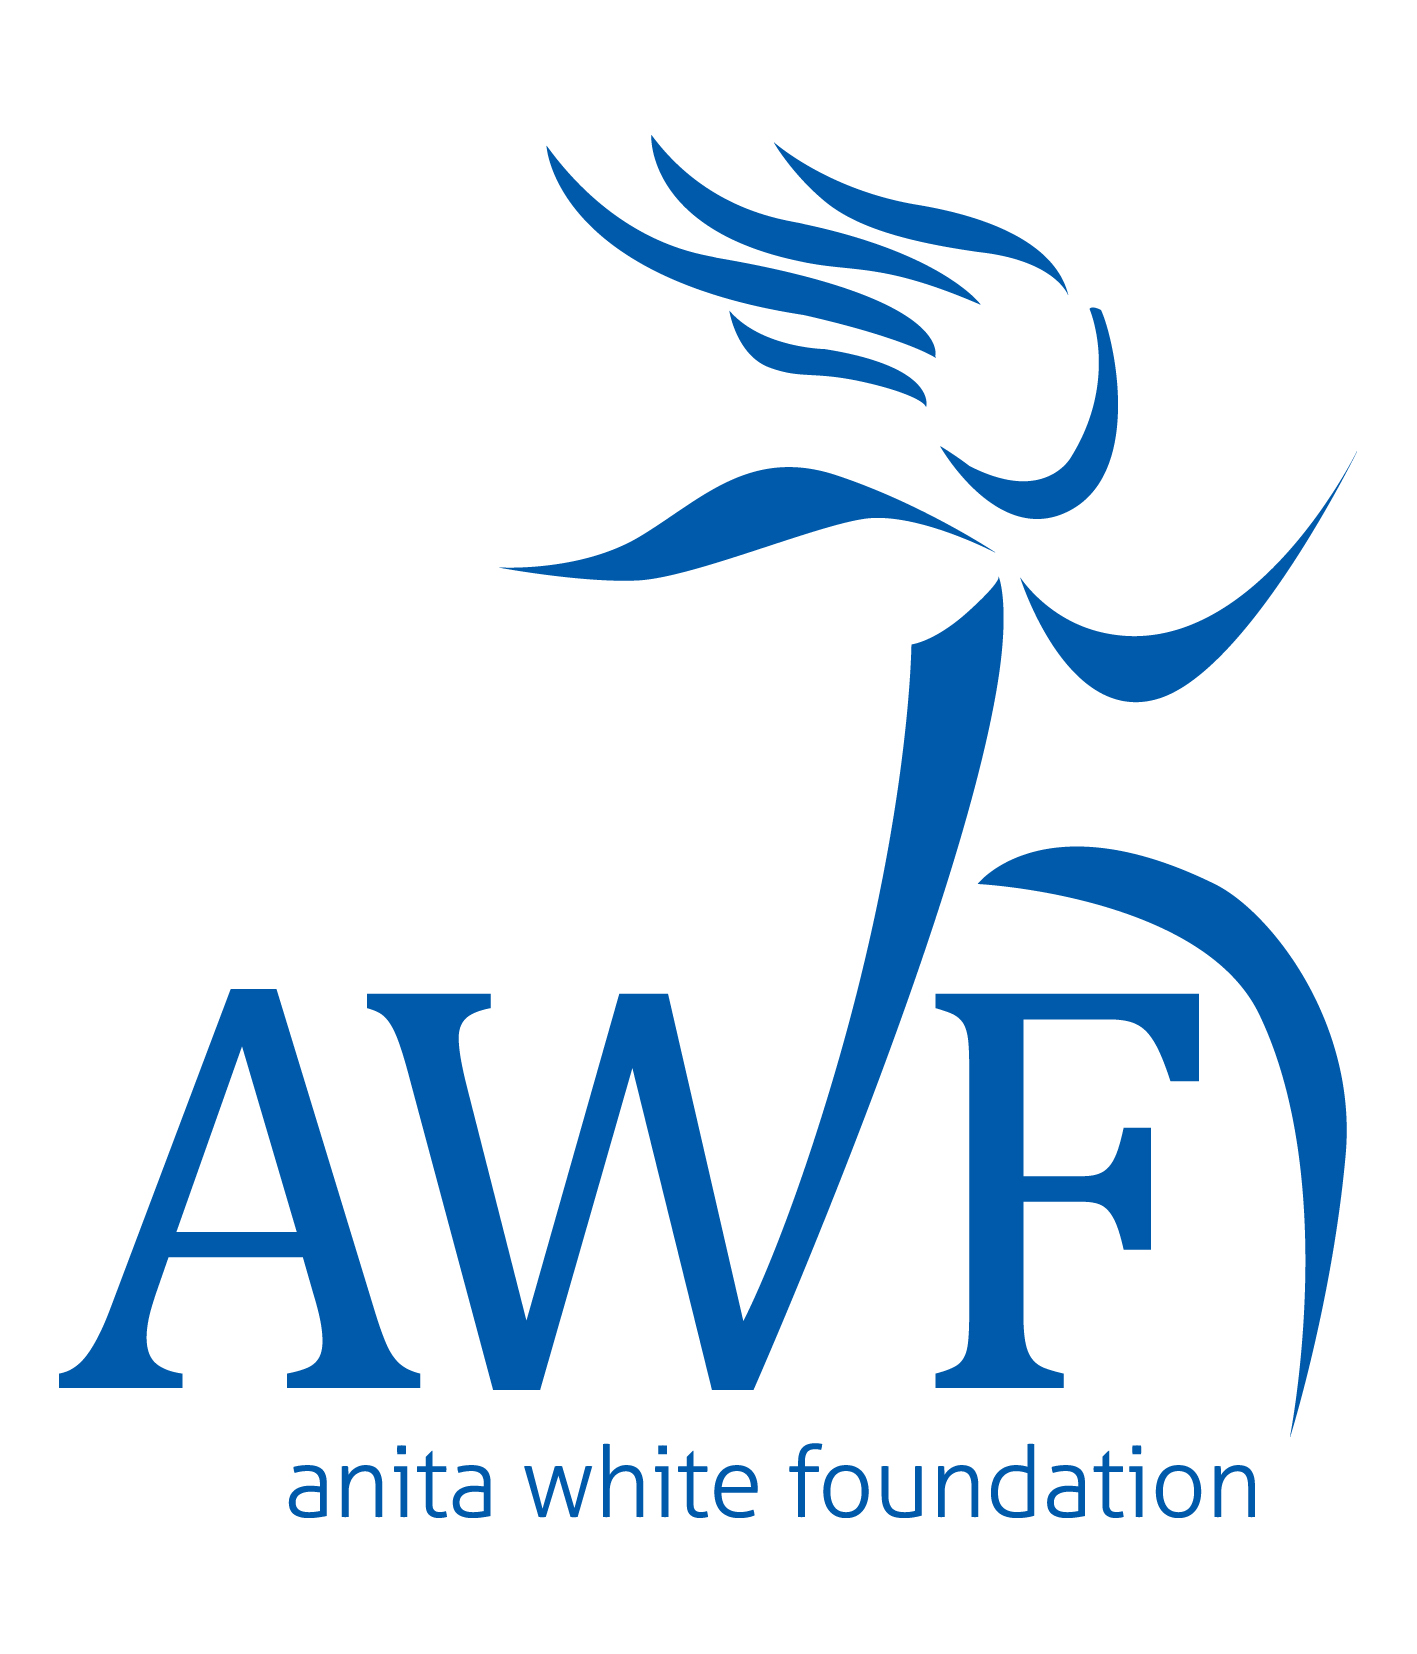 Anita White Foundation (AWF) International Women and Sport Movement Archive